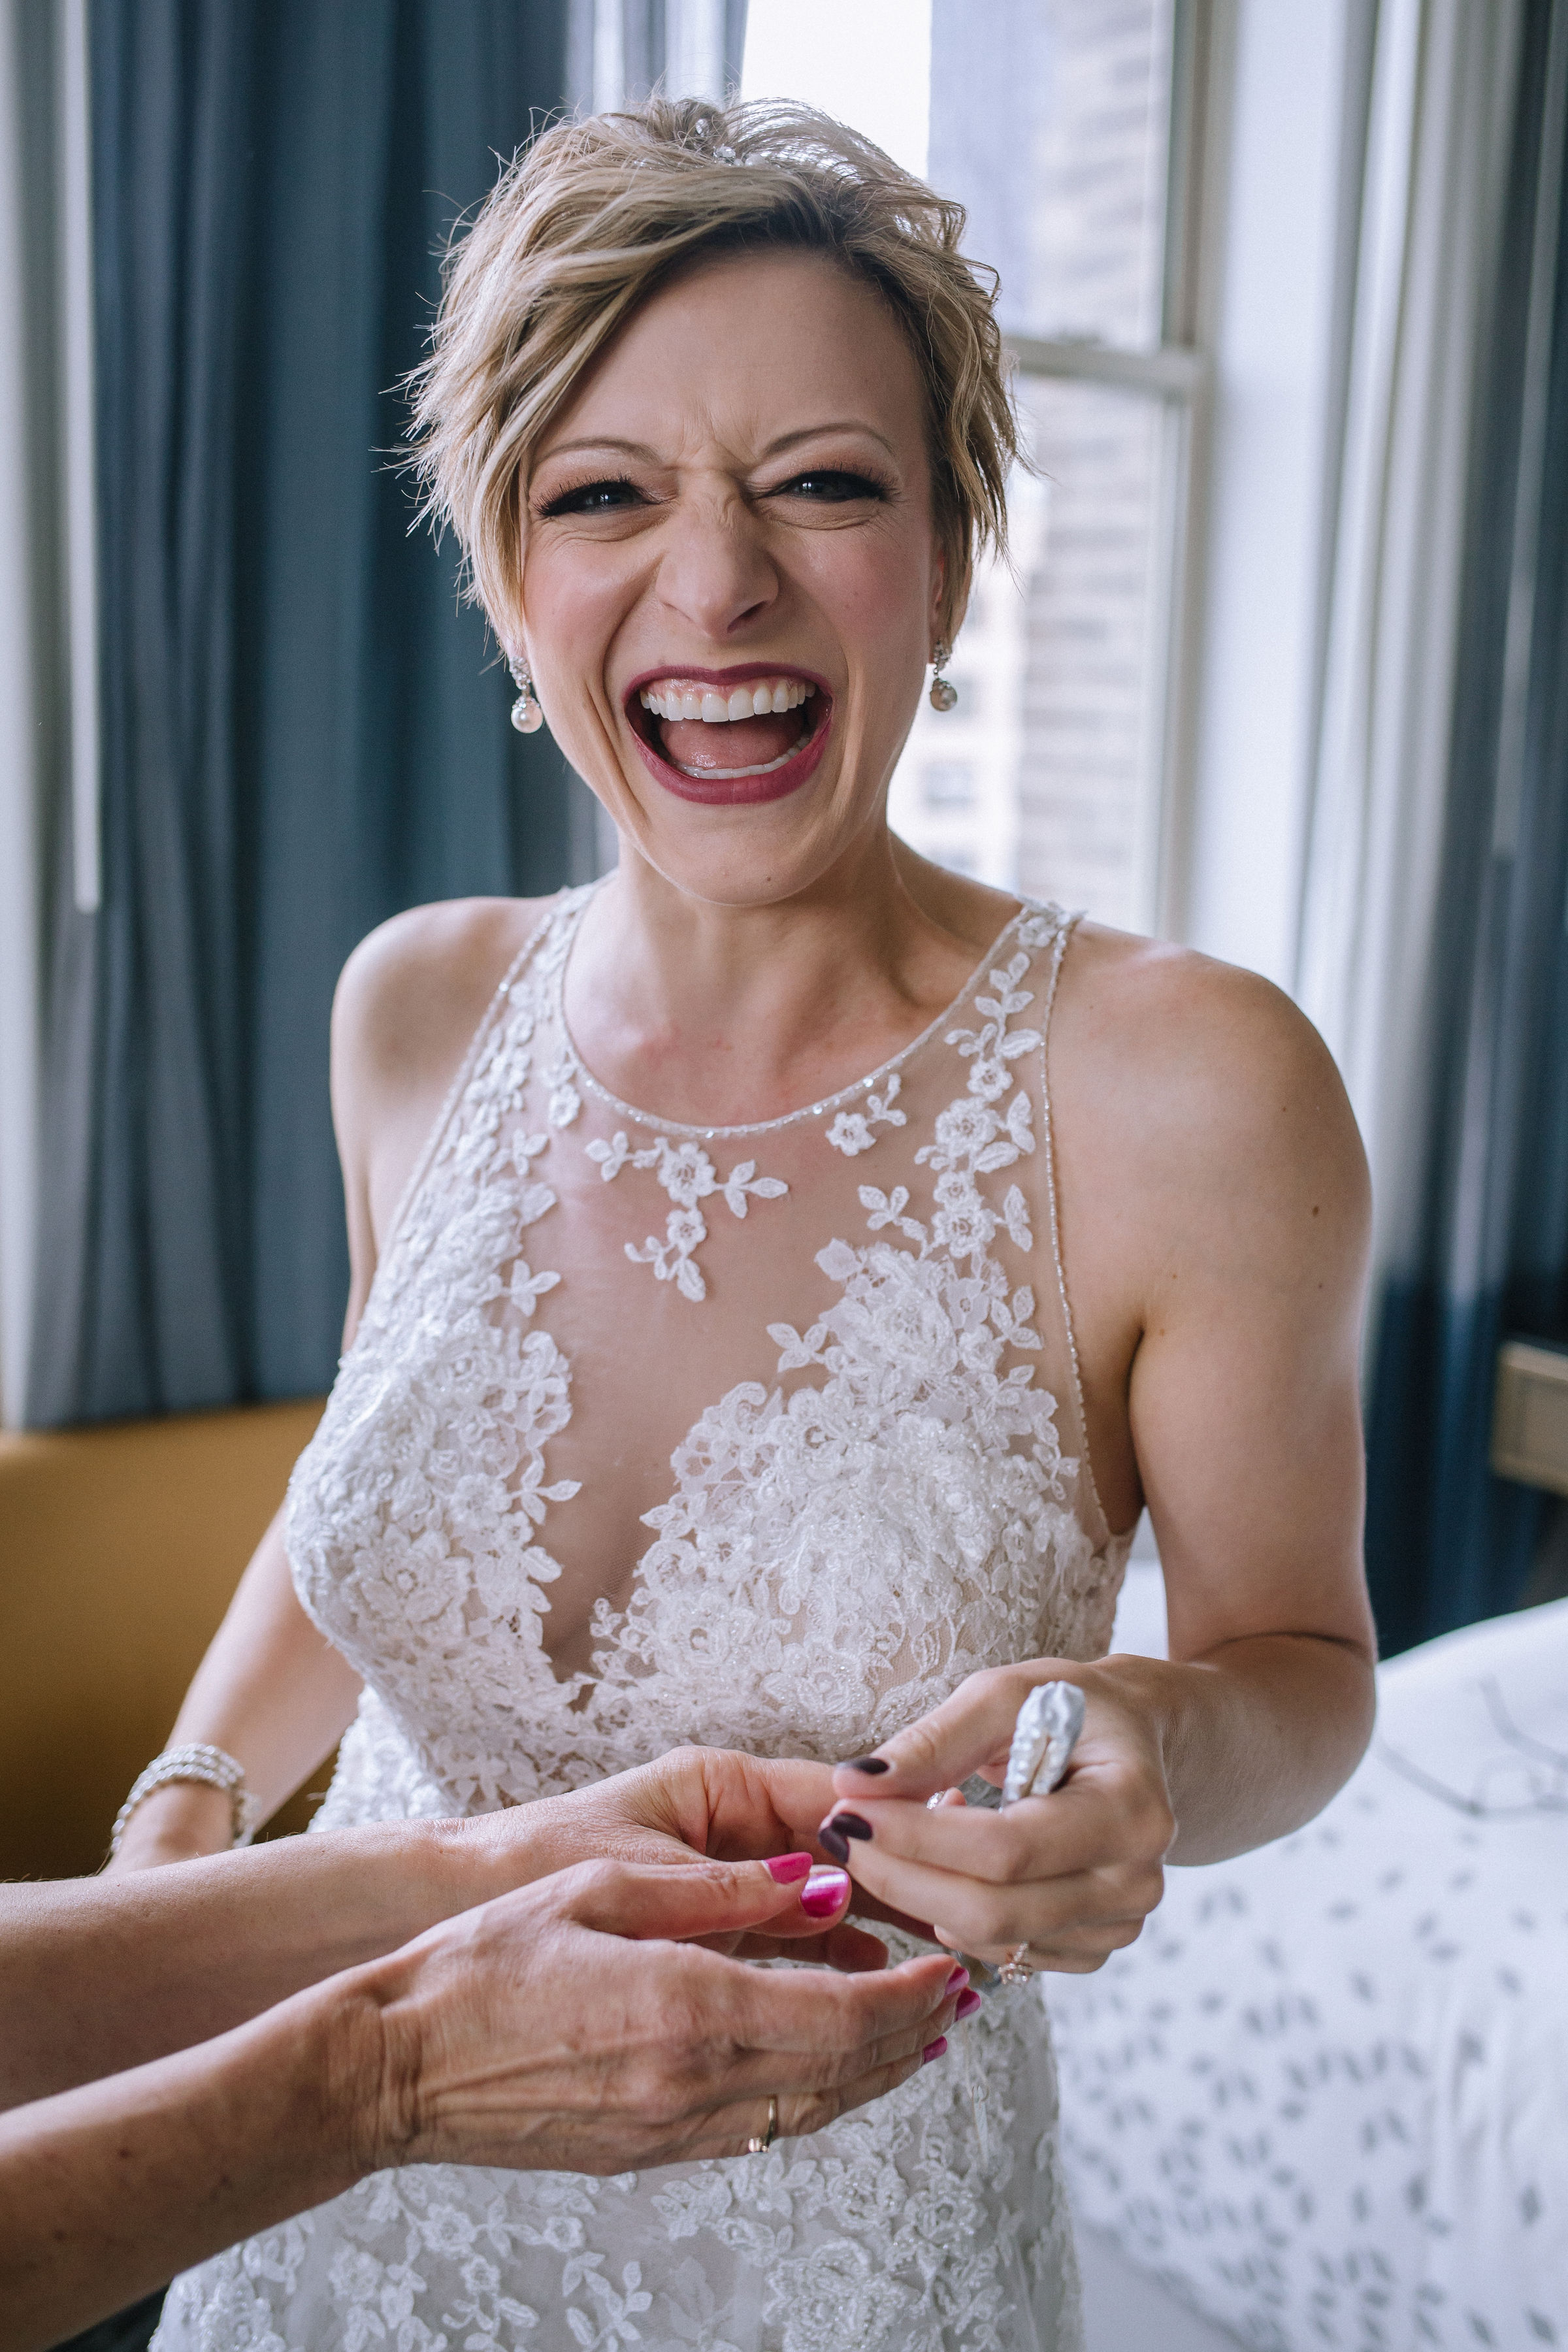 Bride all ready in her embellished wedding dress for Pittsburgh wedding at Studio Slate planned by Exhale Events. Find more wedding inspiration at exhale-events.com!